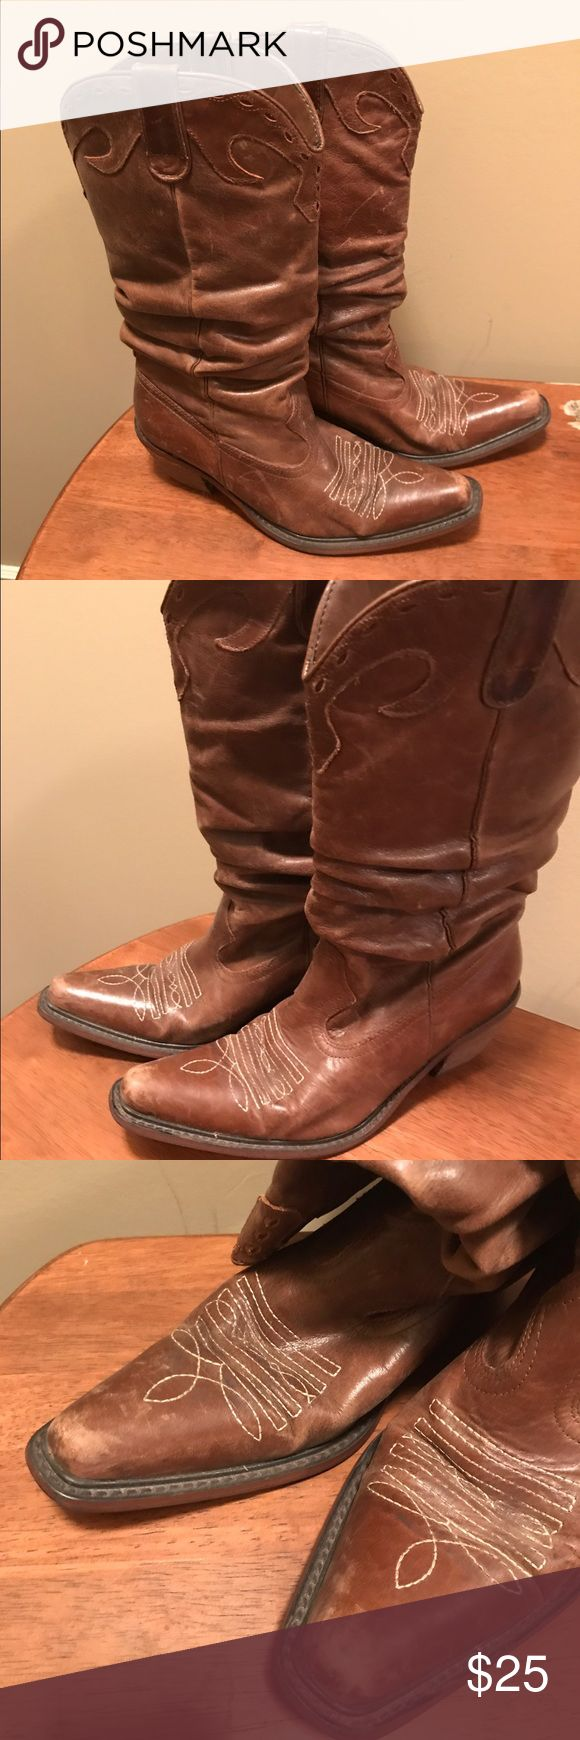 Used saddle style boots Blonde Steve Madden saddle boots.  Still has lots of wear left! Steve Madden Shoes Heeled Boots